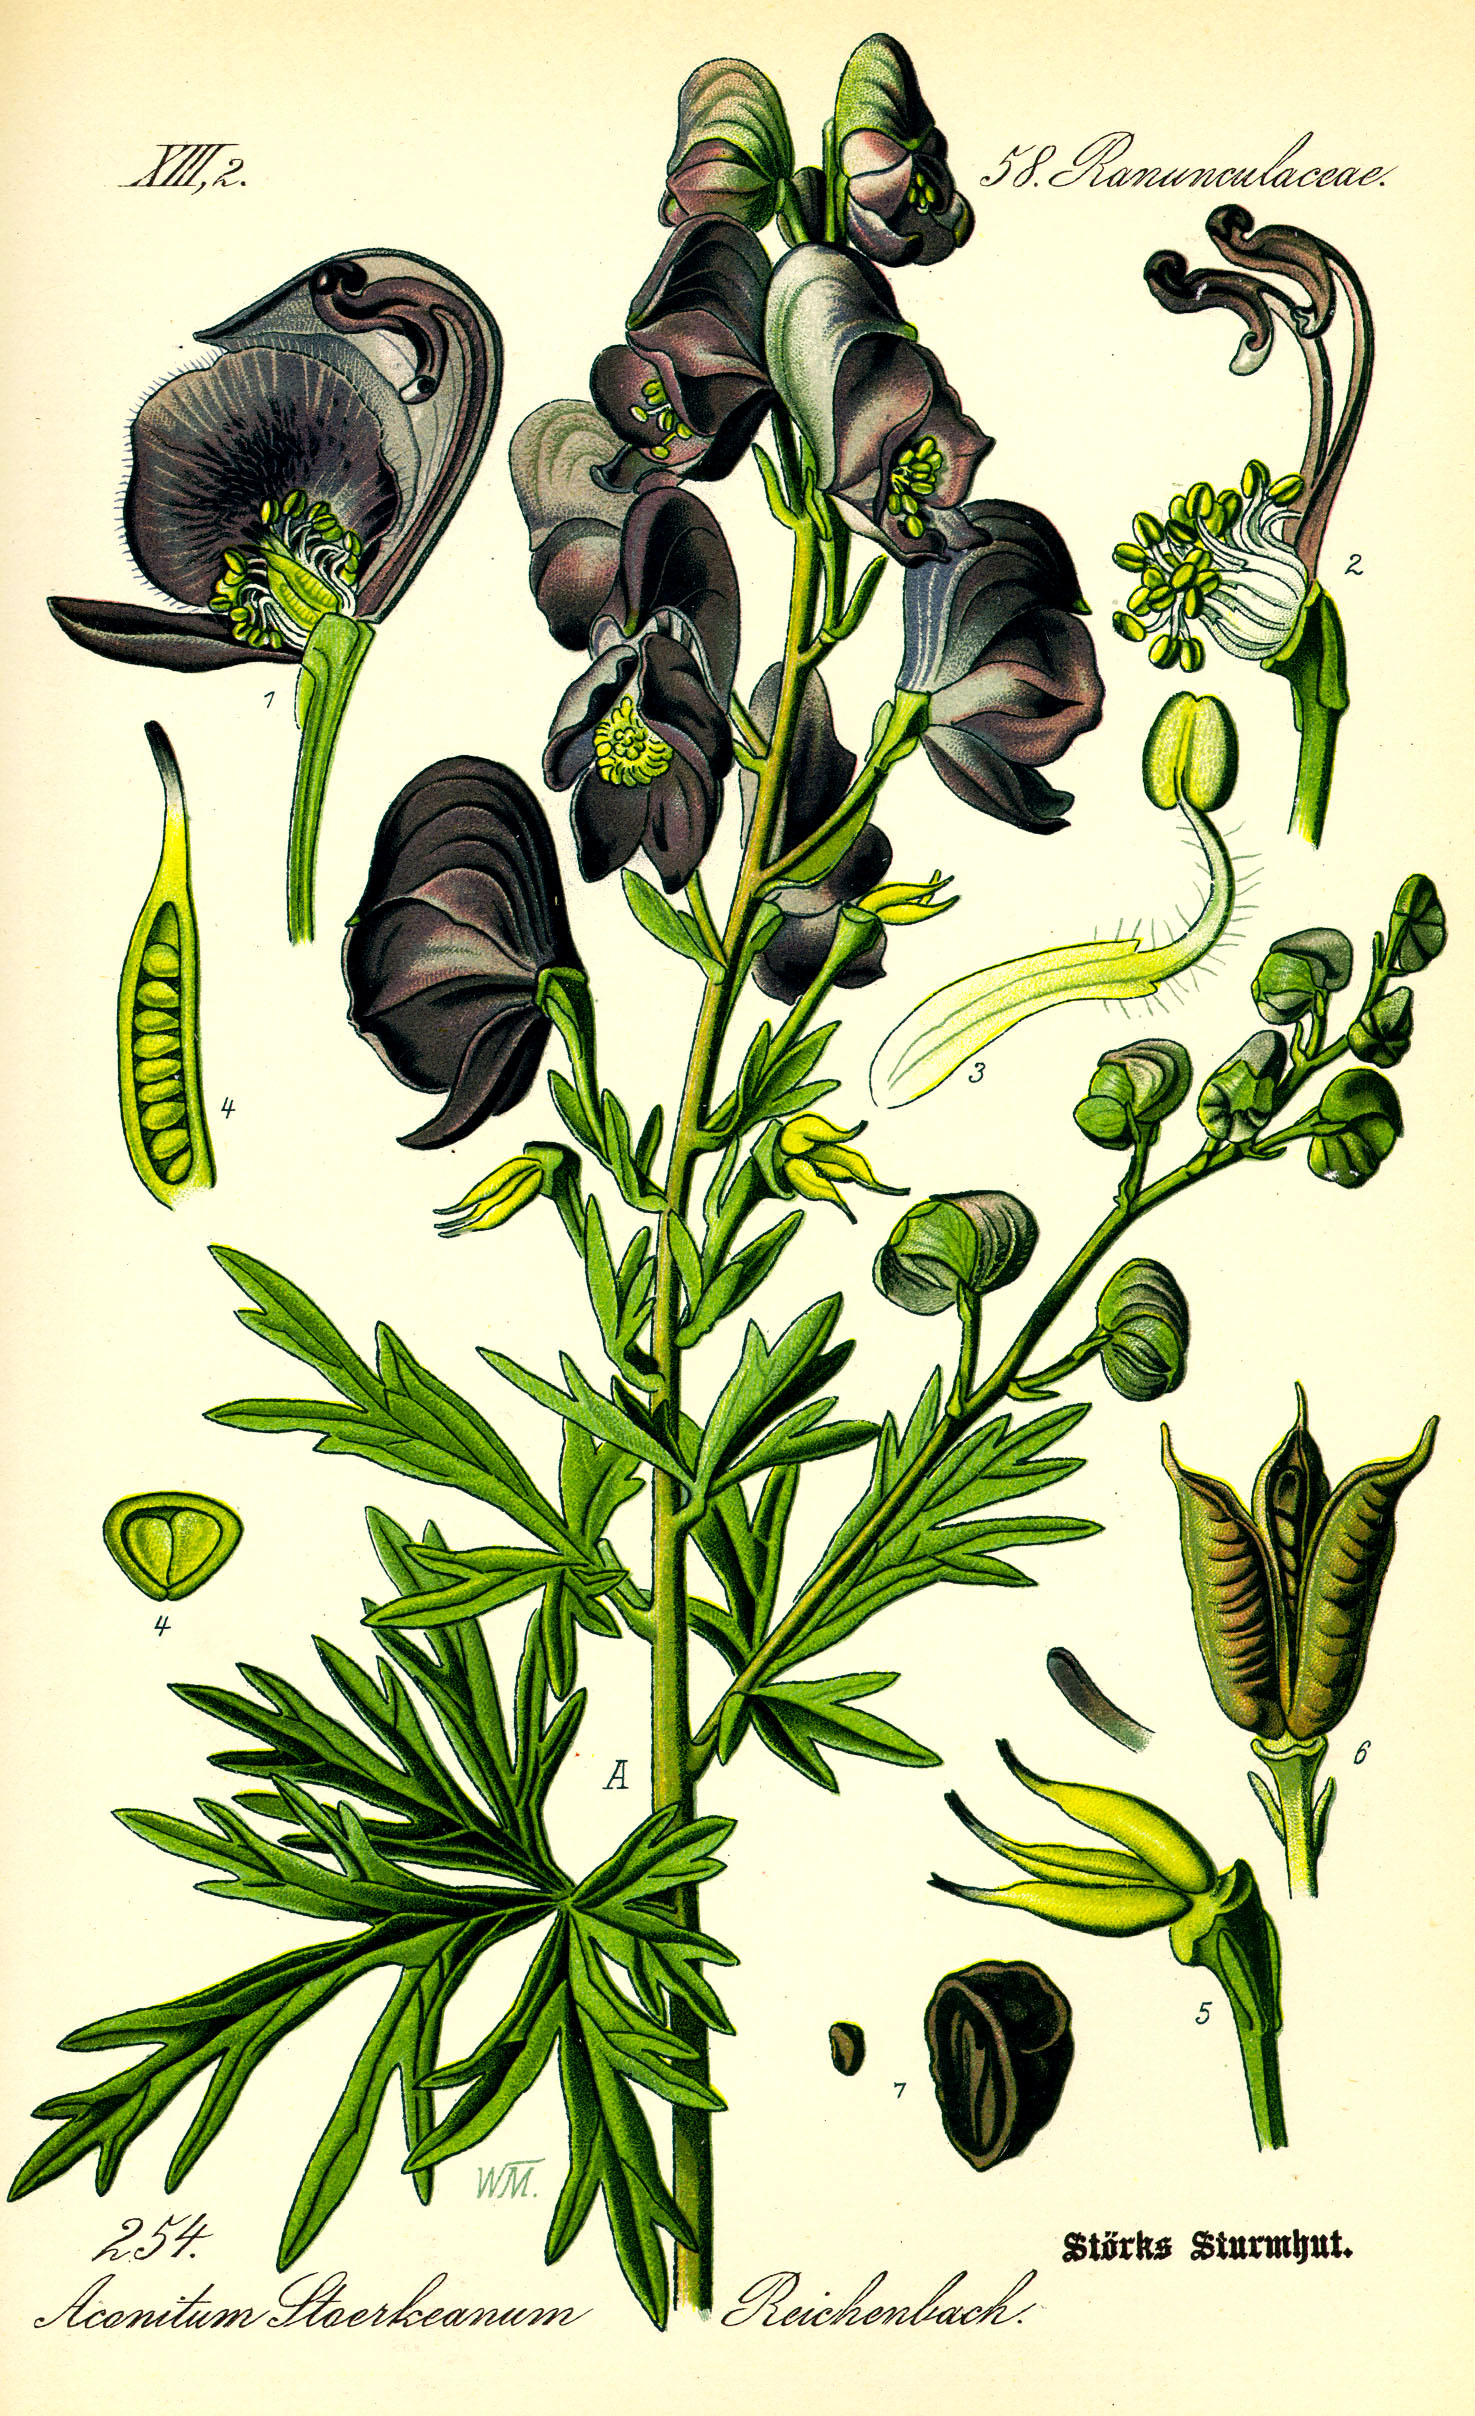 Aconoite-illustration-of-blooming-wolfsbane-with-purple-flowers